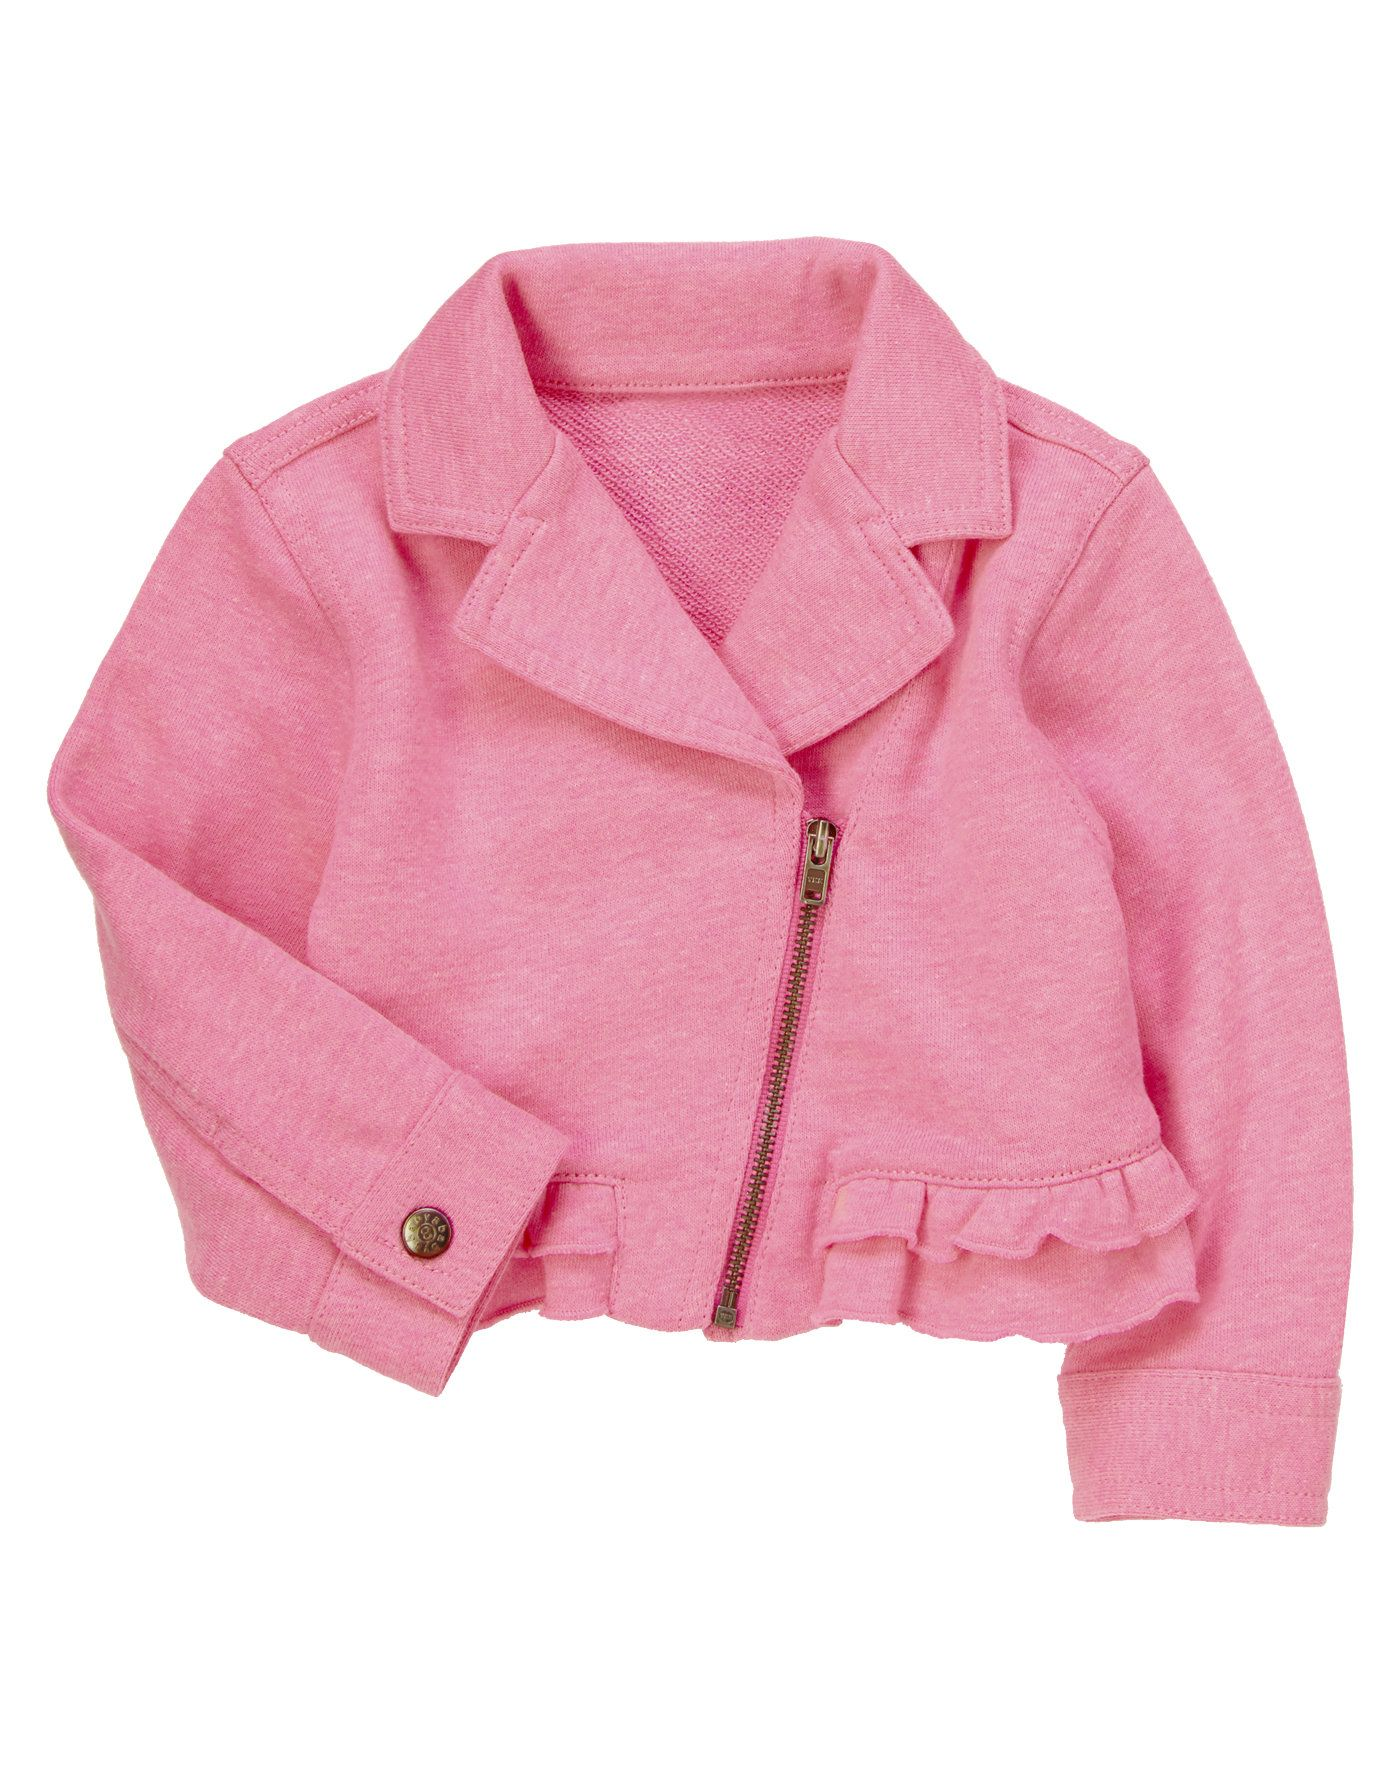 Neon pink jacket sweater with pretty ruffles and a moto style ...